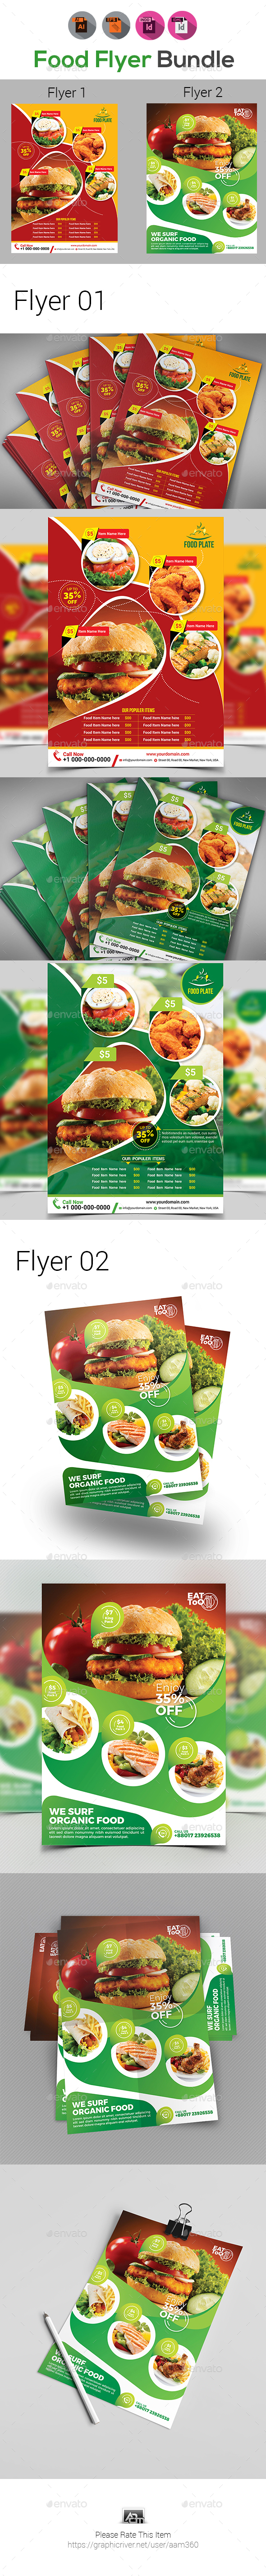 Food Flyer Template Bundle - Restaurant Flyers